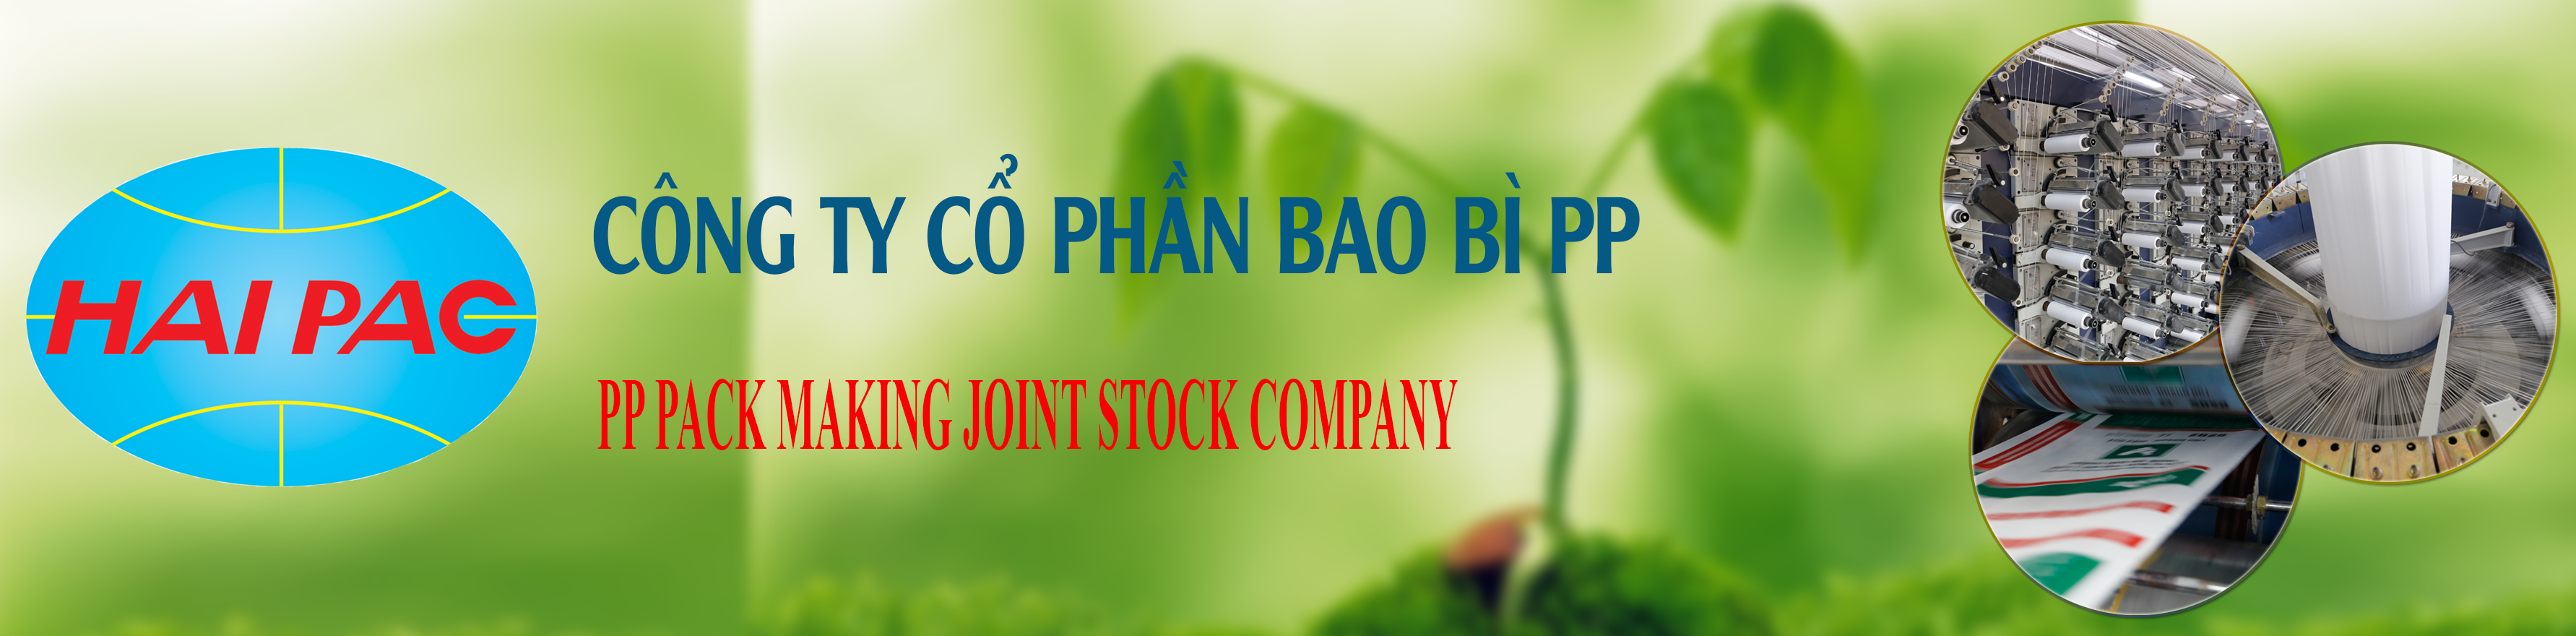 PP Pack Making Joint Stock Company